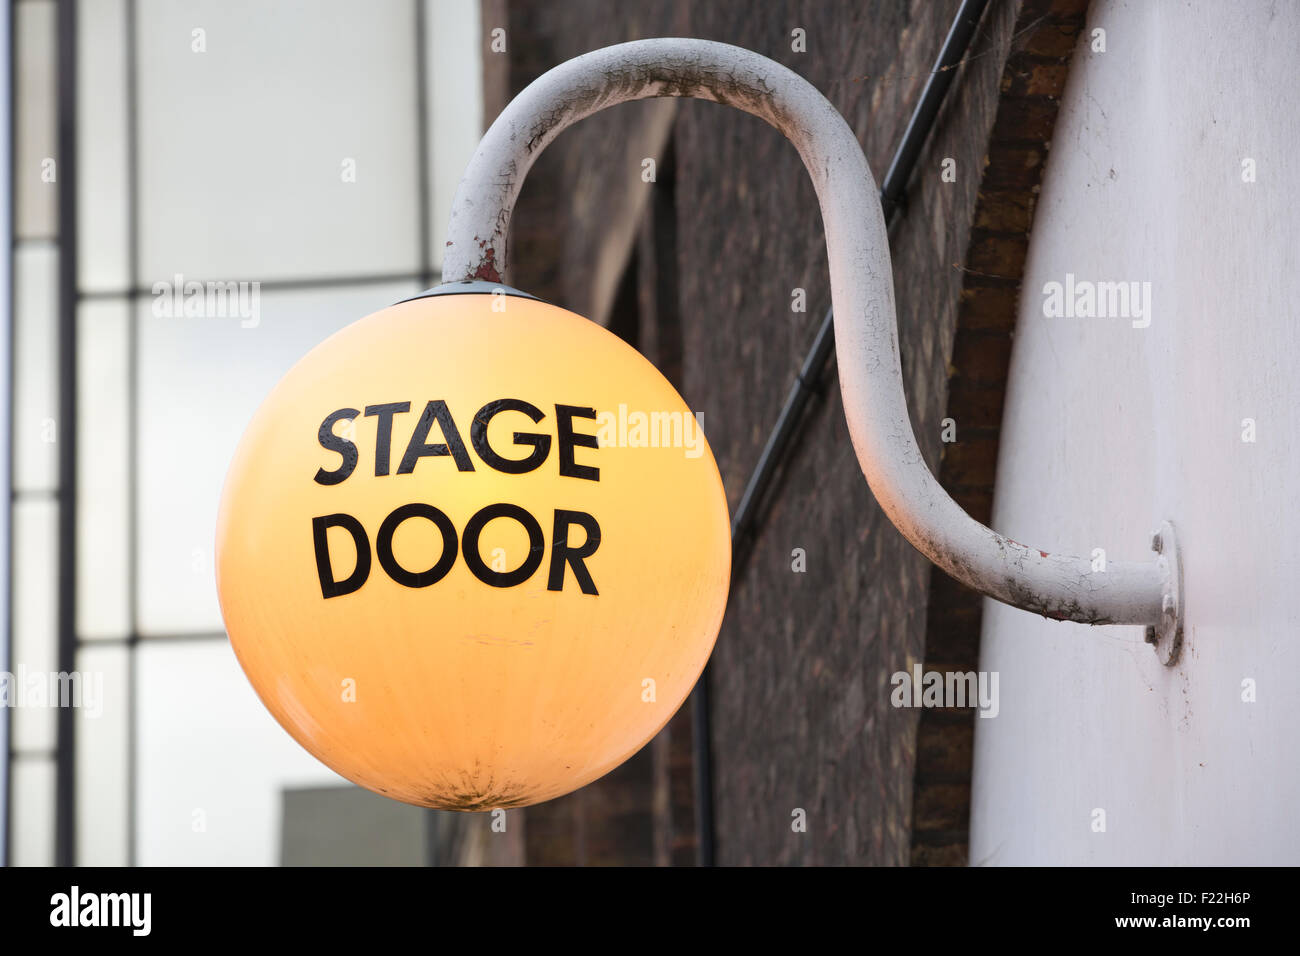 Stage Door outside The Old Vic Theatre, south-east of Waterloo Station, Central London, England, UK - Stock Image